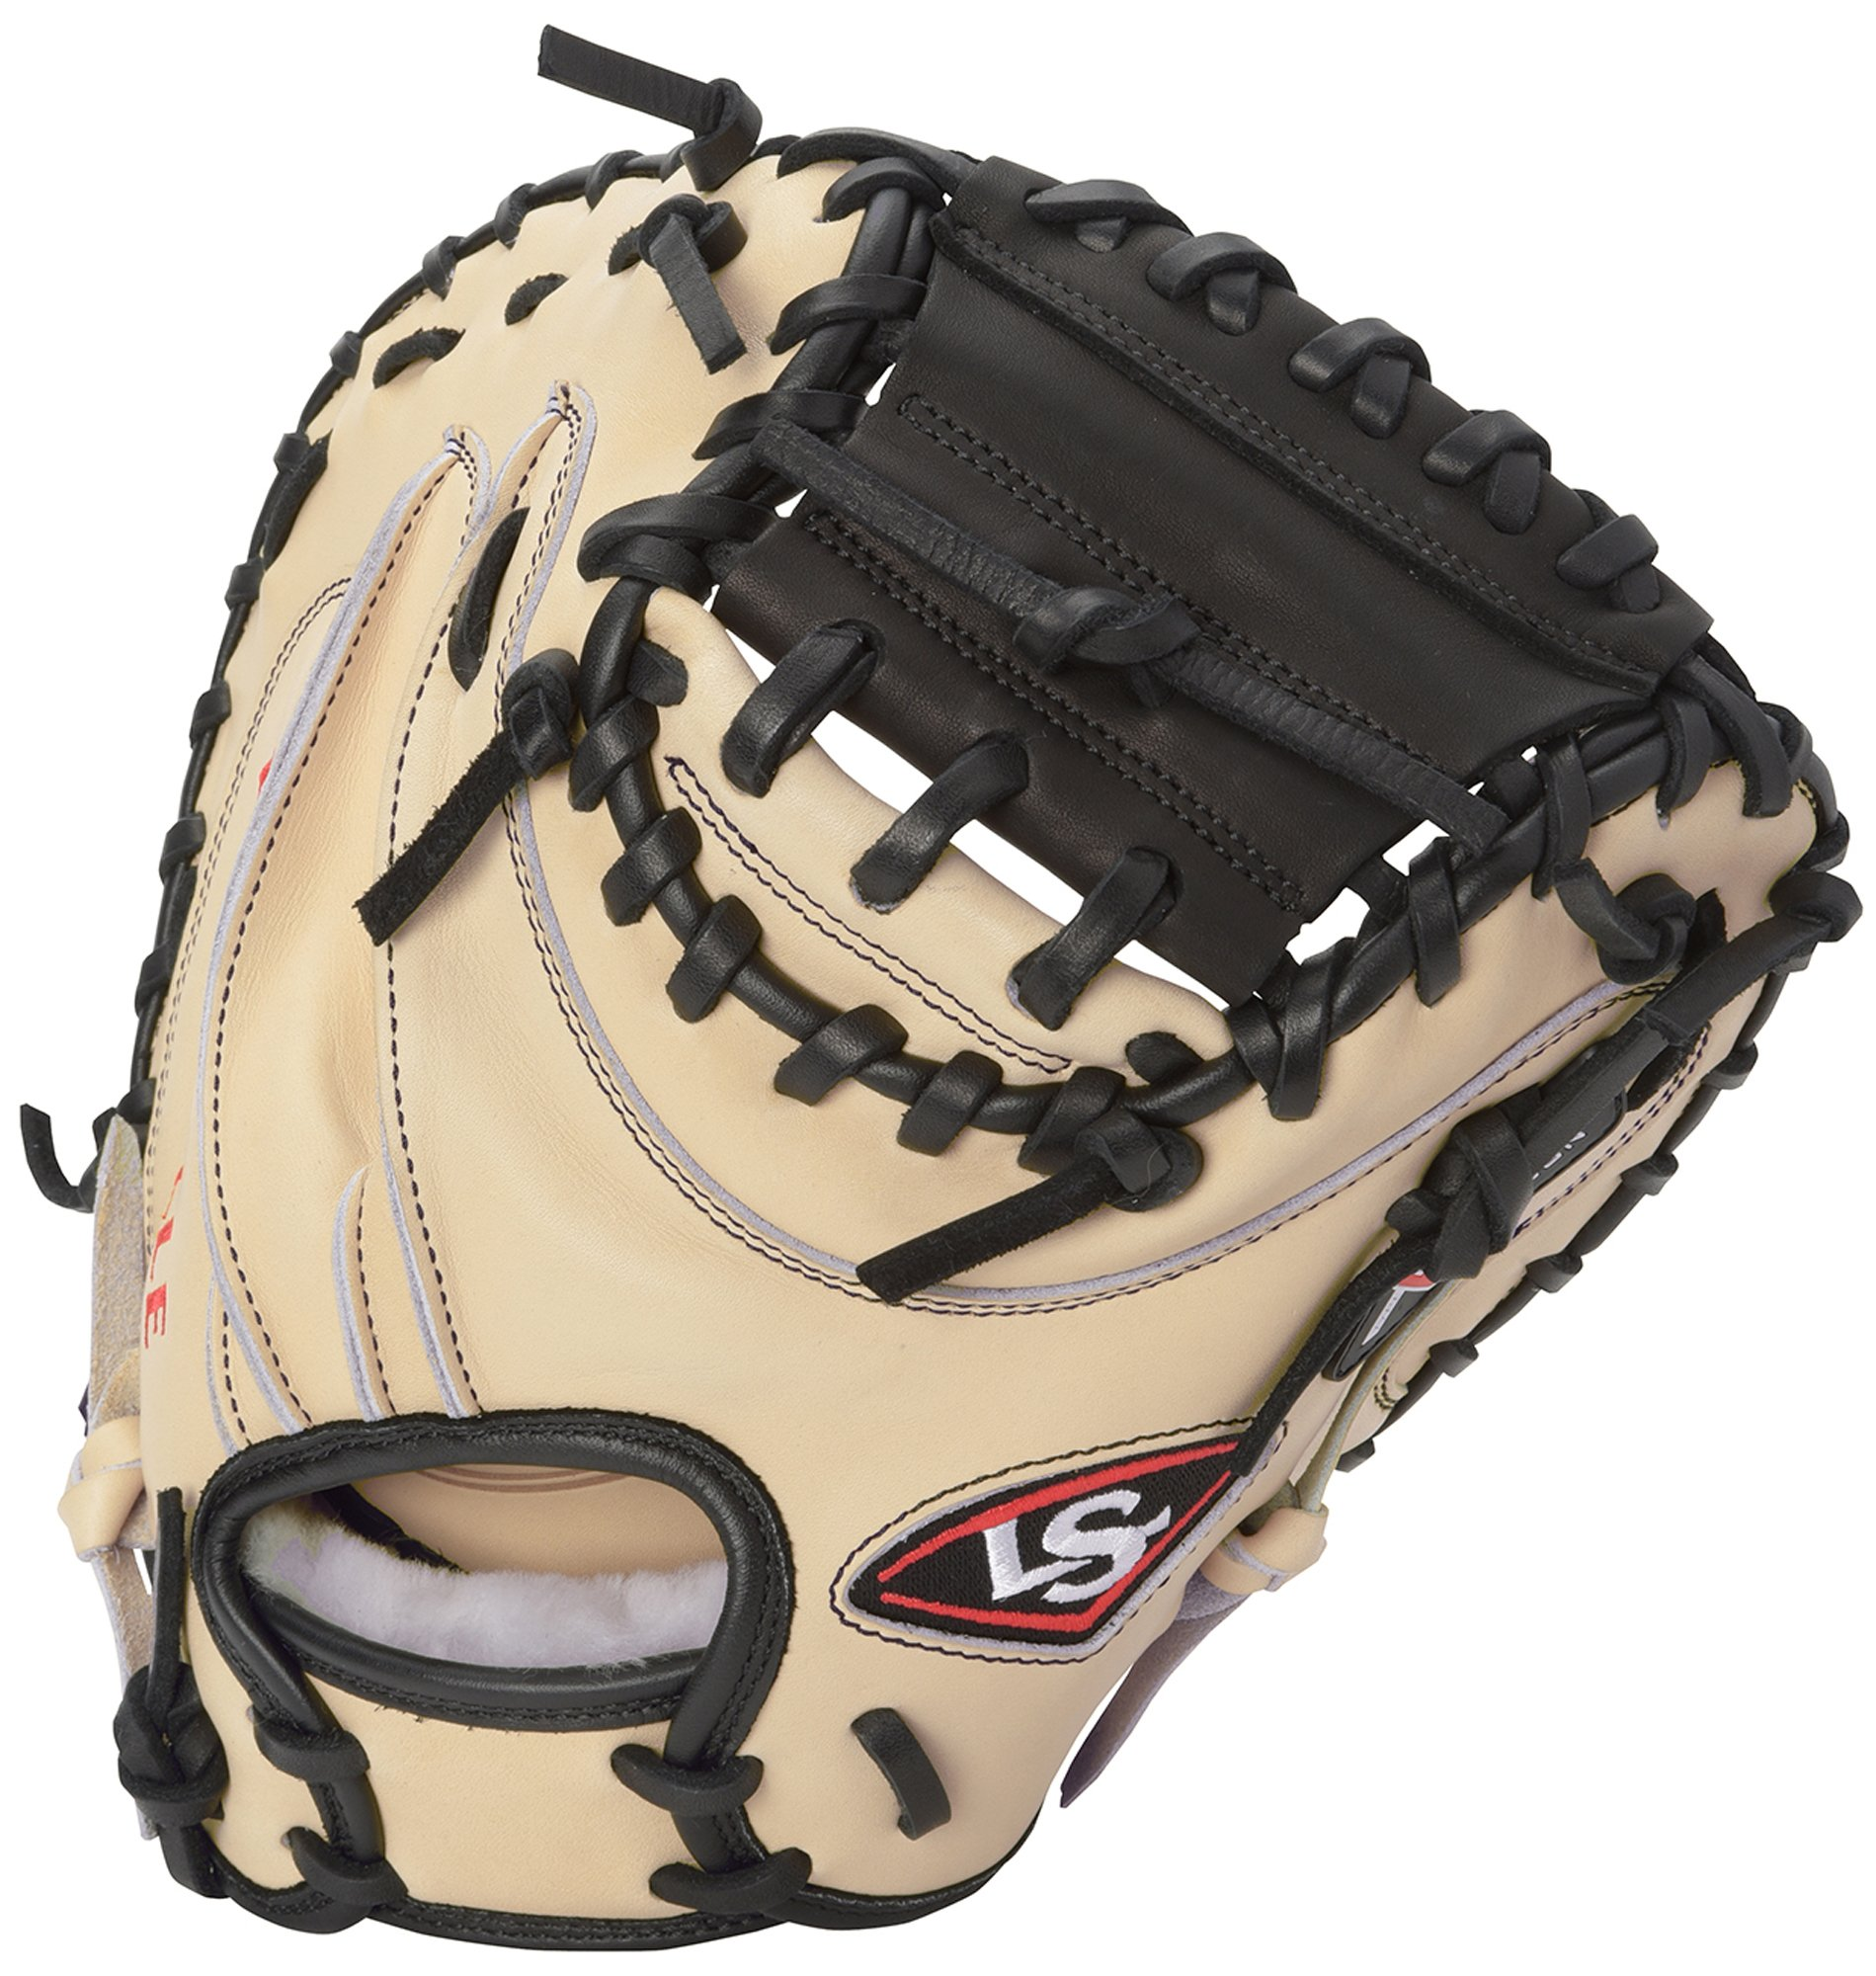 Louisville Slugger Pro Flare Catcher's Mitt, Cream/Black, Right Hand Throw by Louisville Slugger